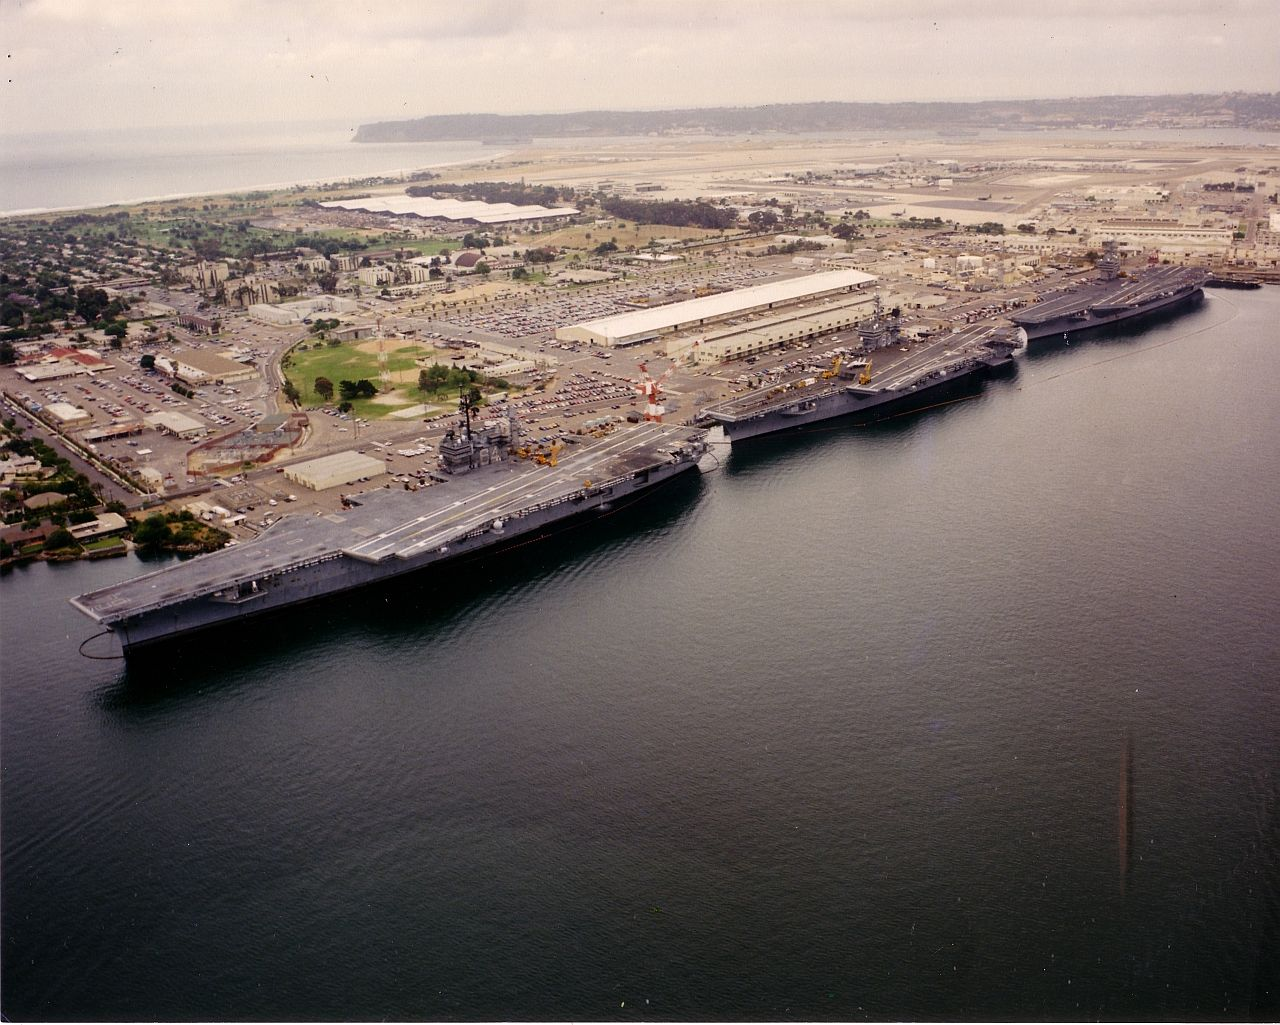 Aircraft carriers pierside at naval air station north